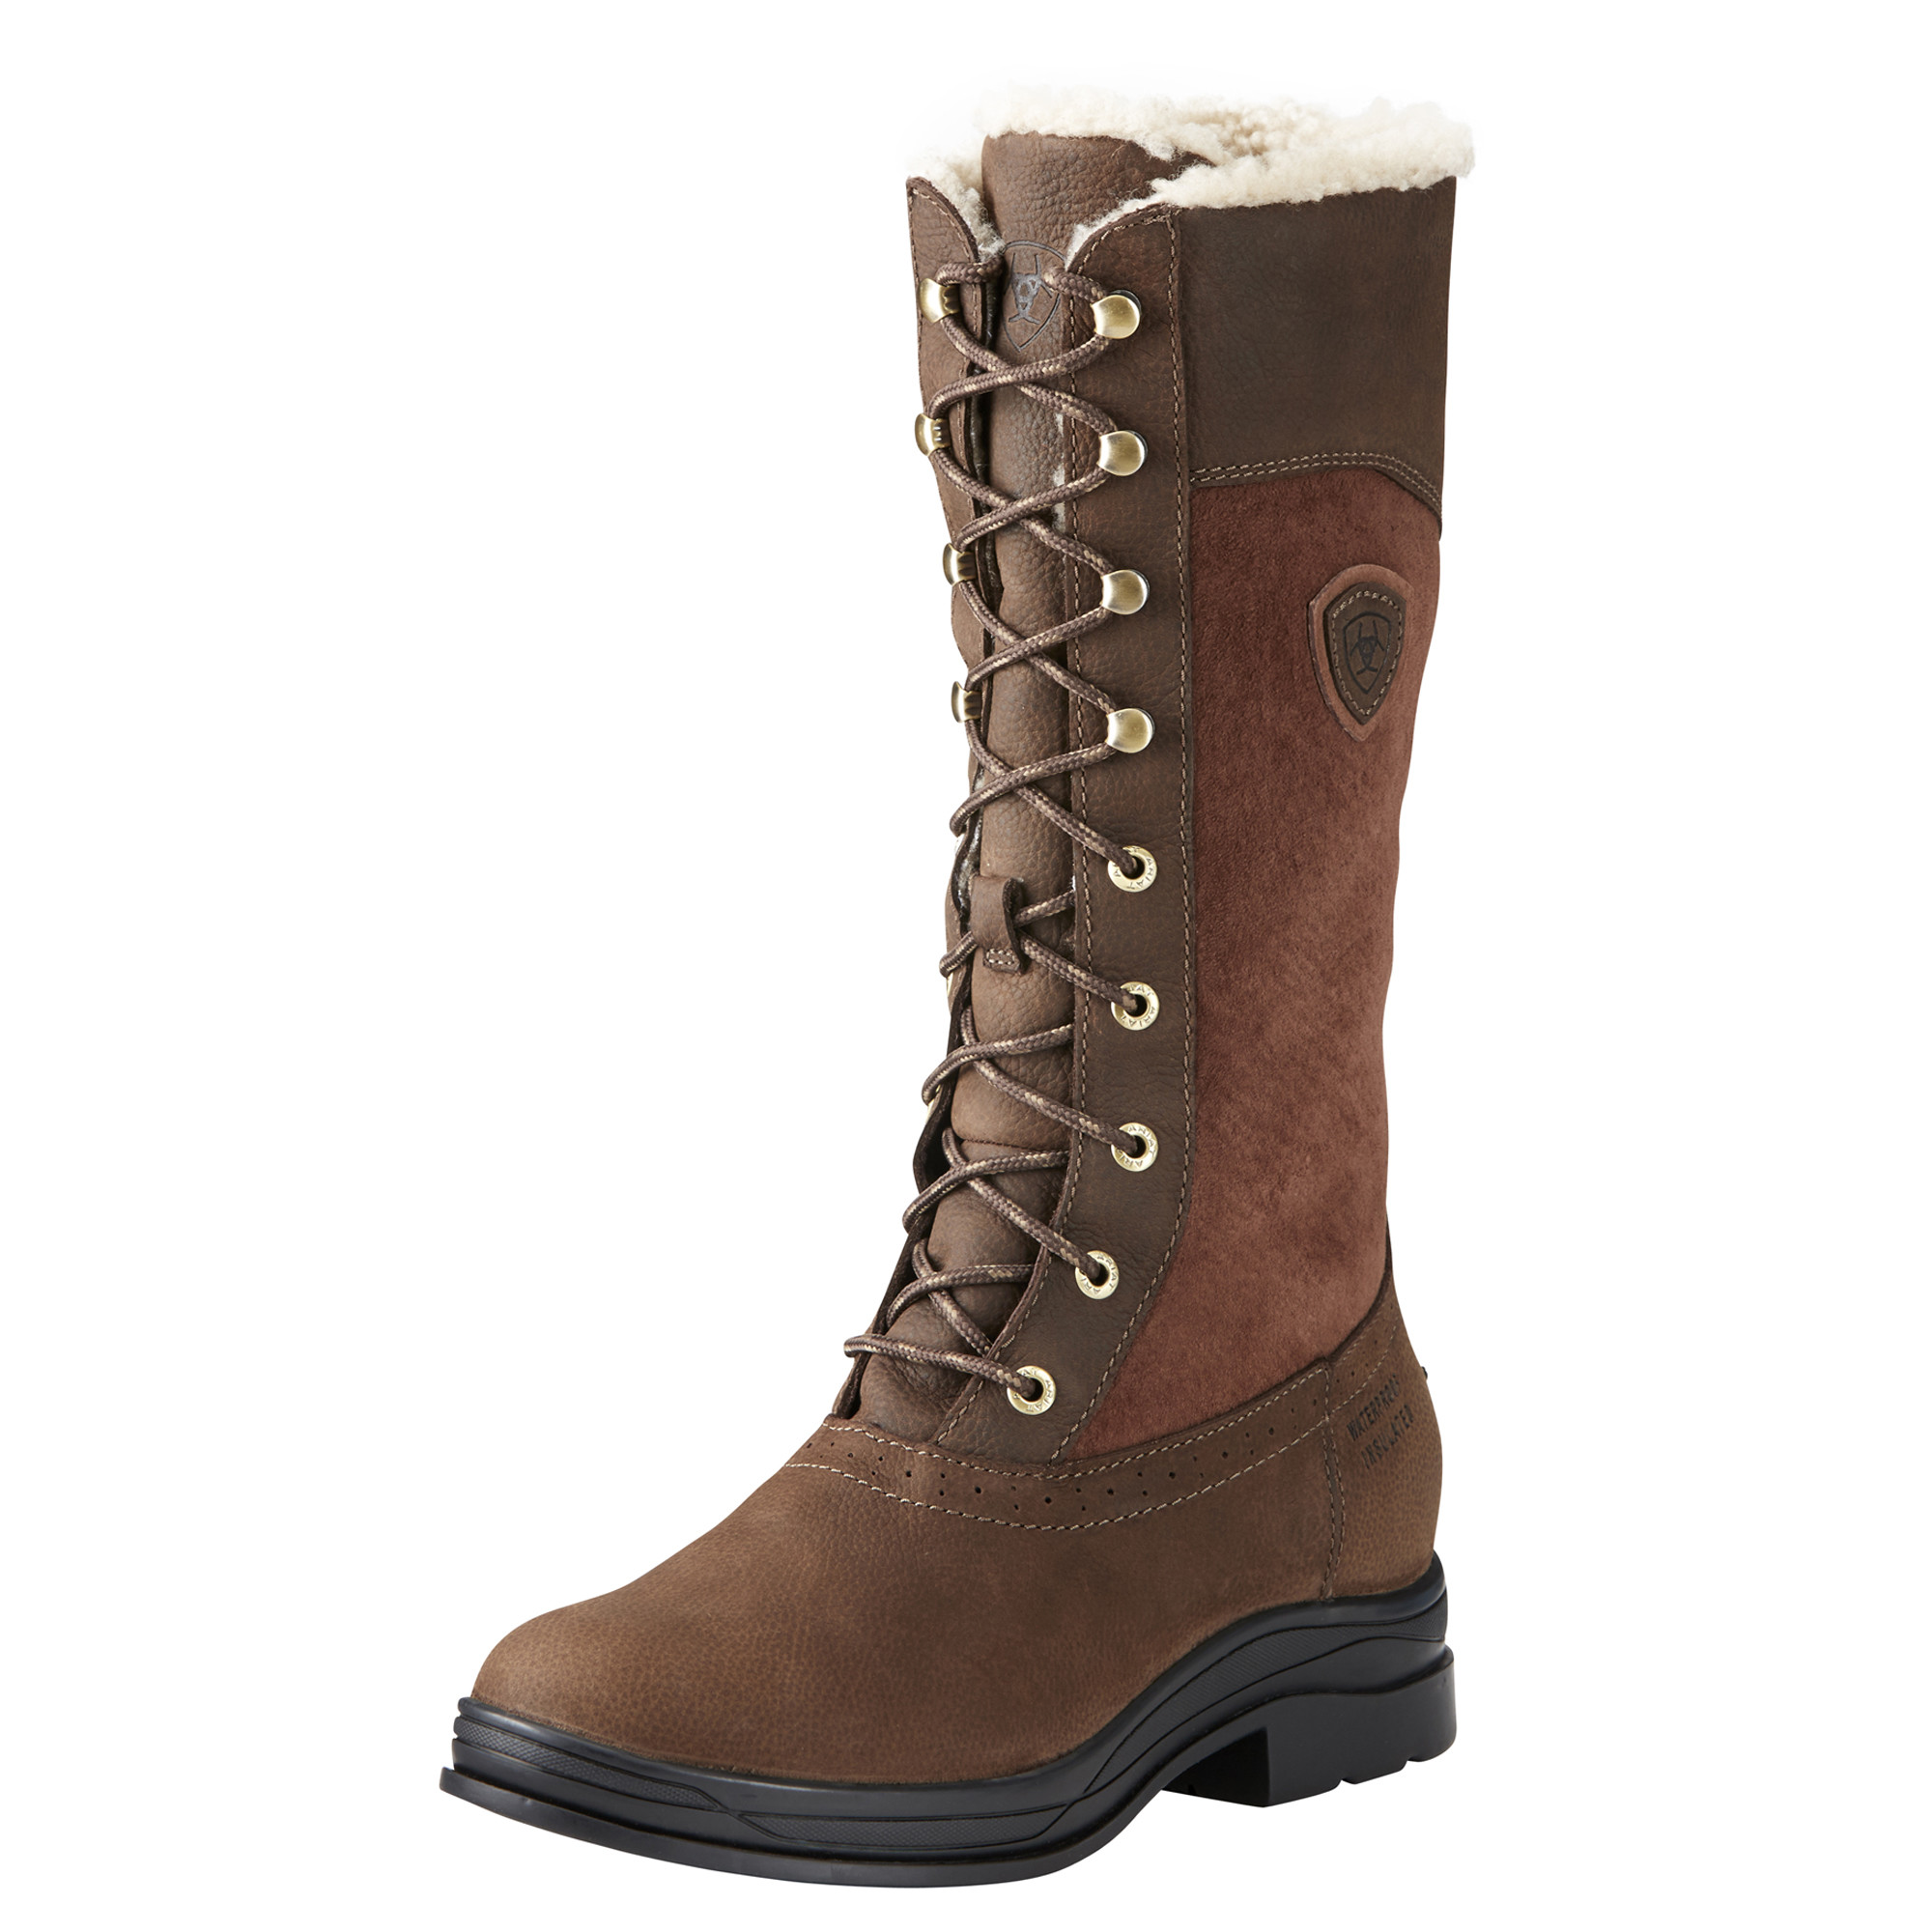 Ariat Wythburn H2O laars insulated bruin maat:37,5